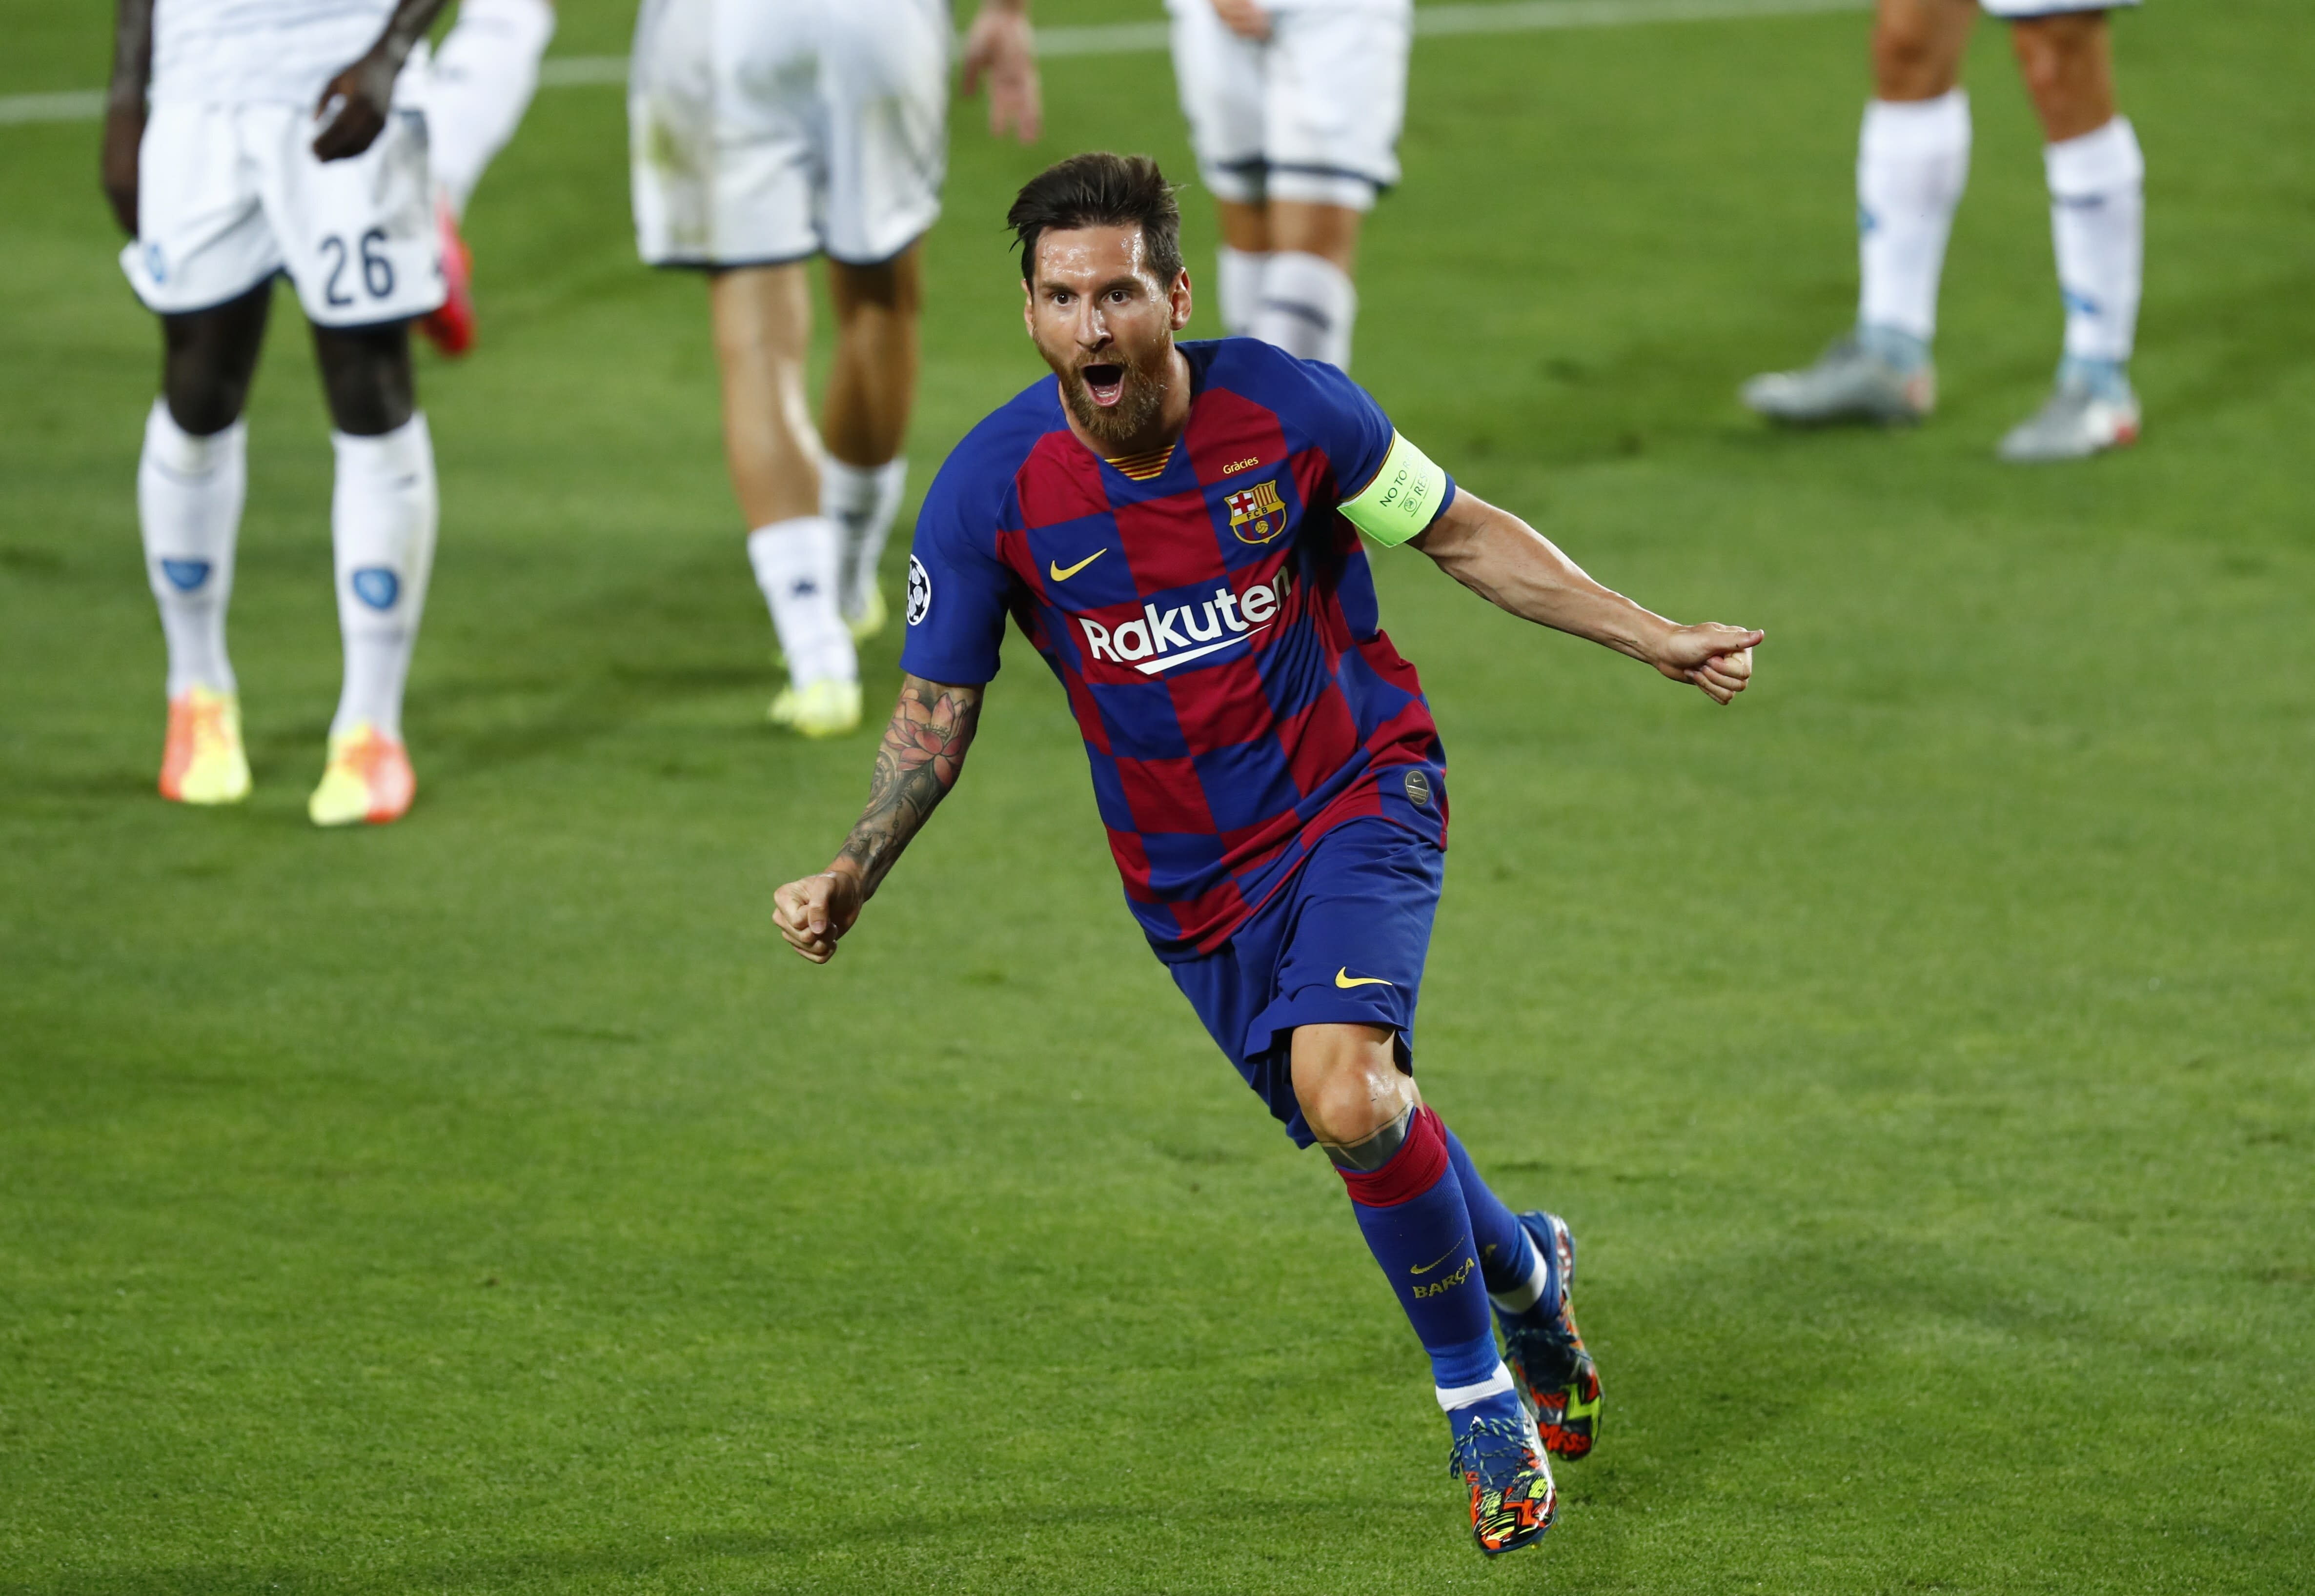 Lionel Messi S Brilliant Goal Lifts Barcelona In Champions League